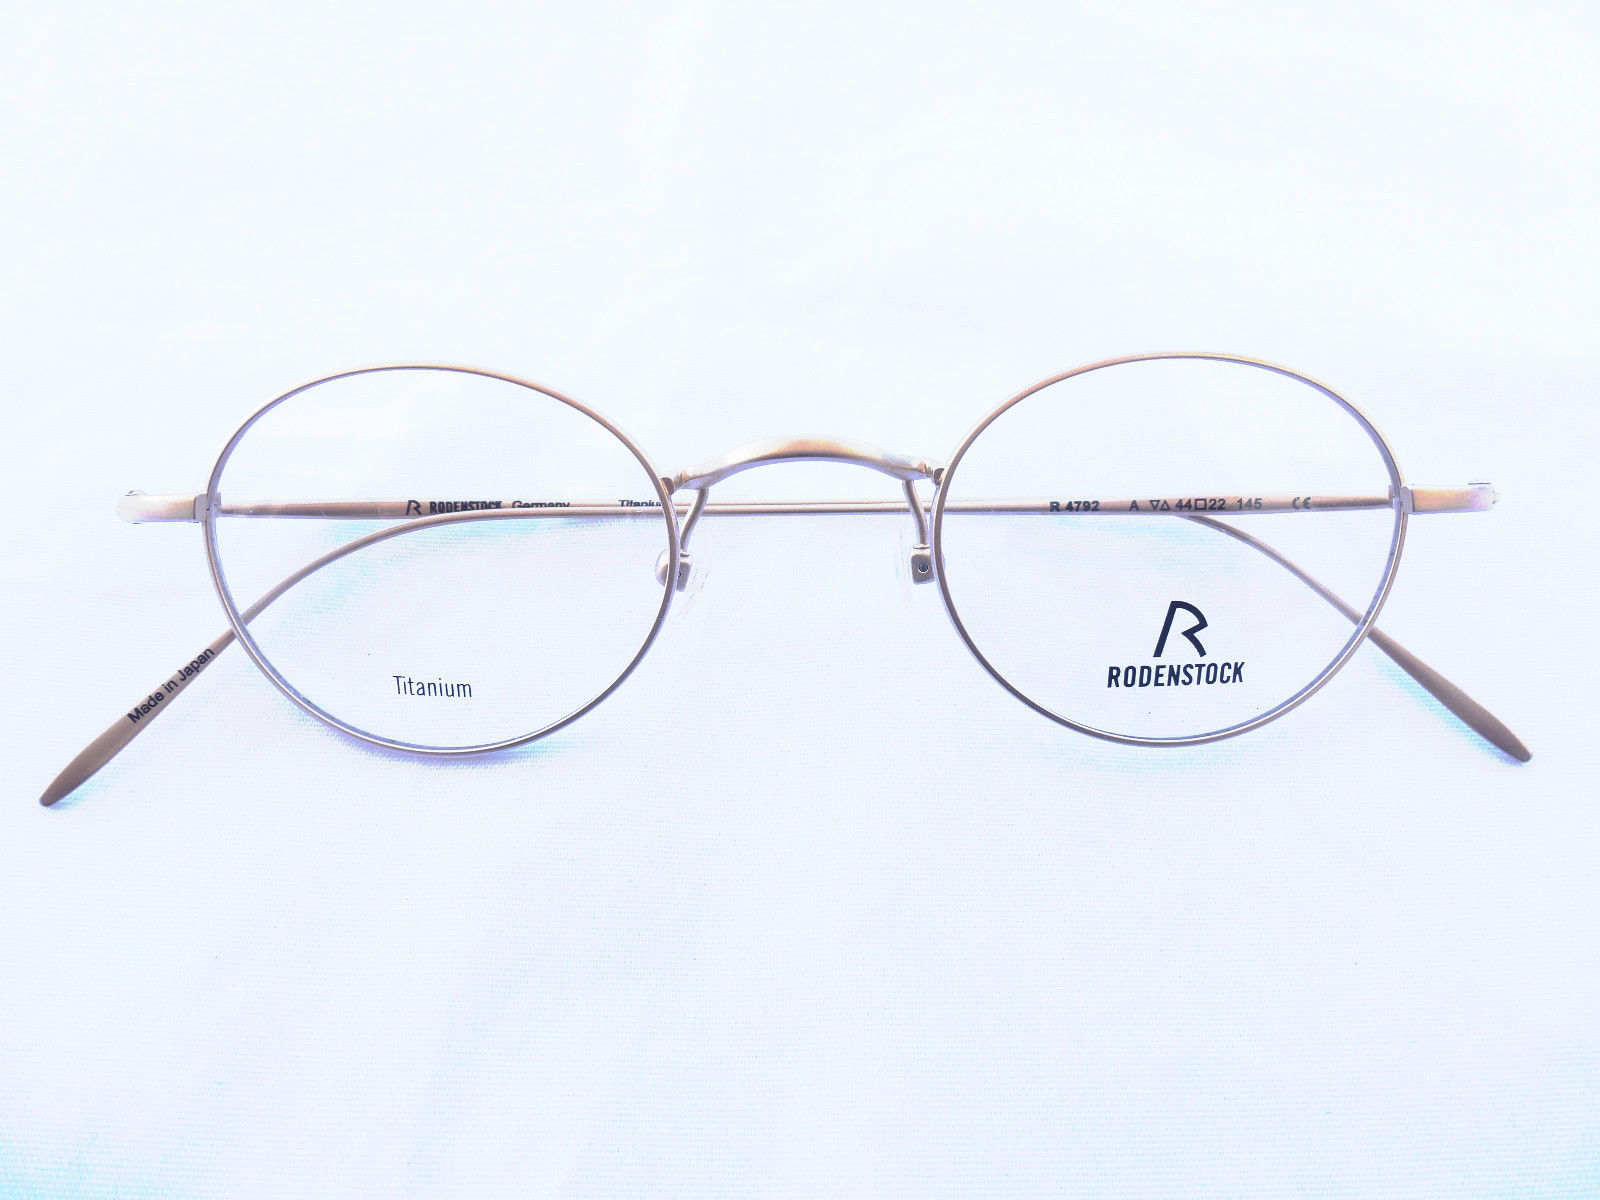 rodenstock glasses 2 customer reviews and 11 listings